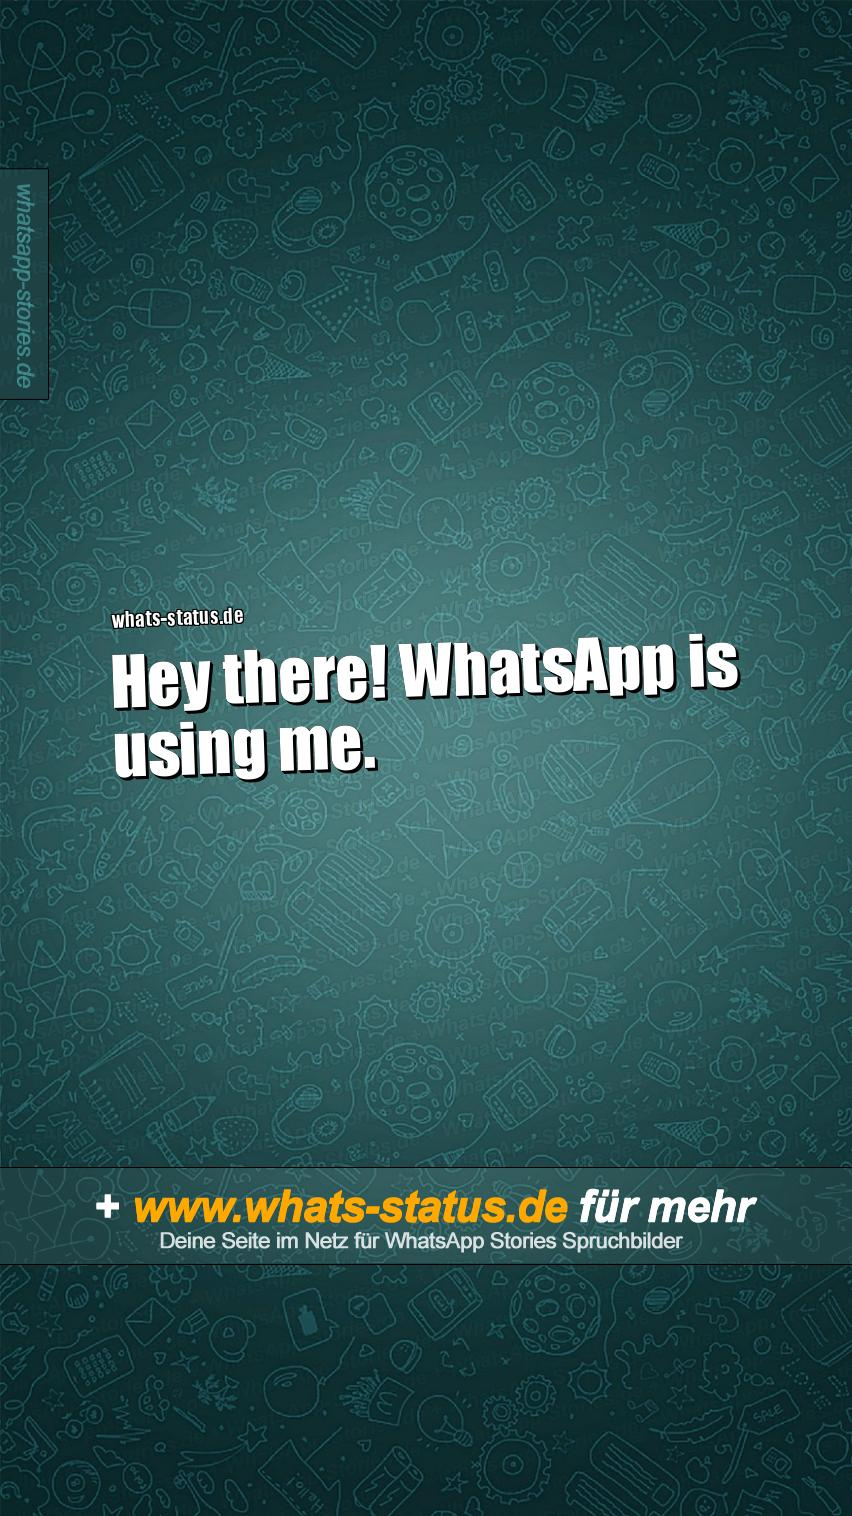 Hey there! WhatsApp is using me.